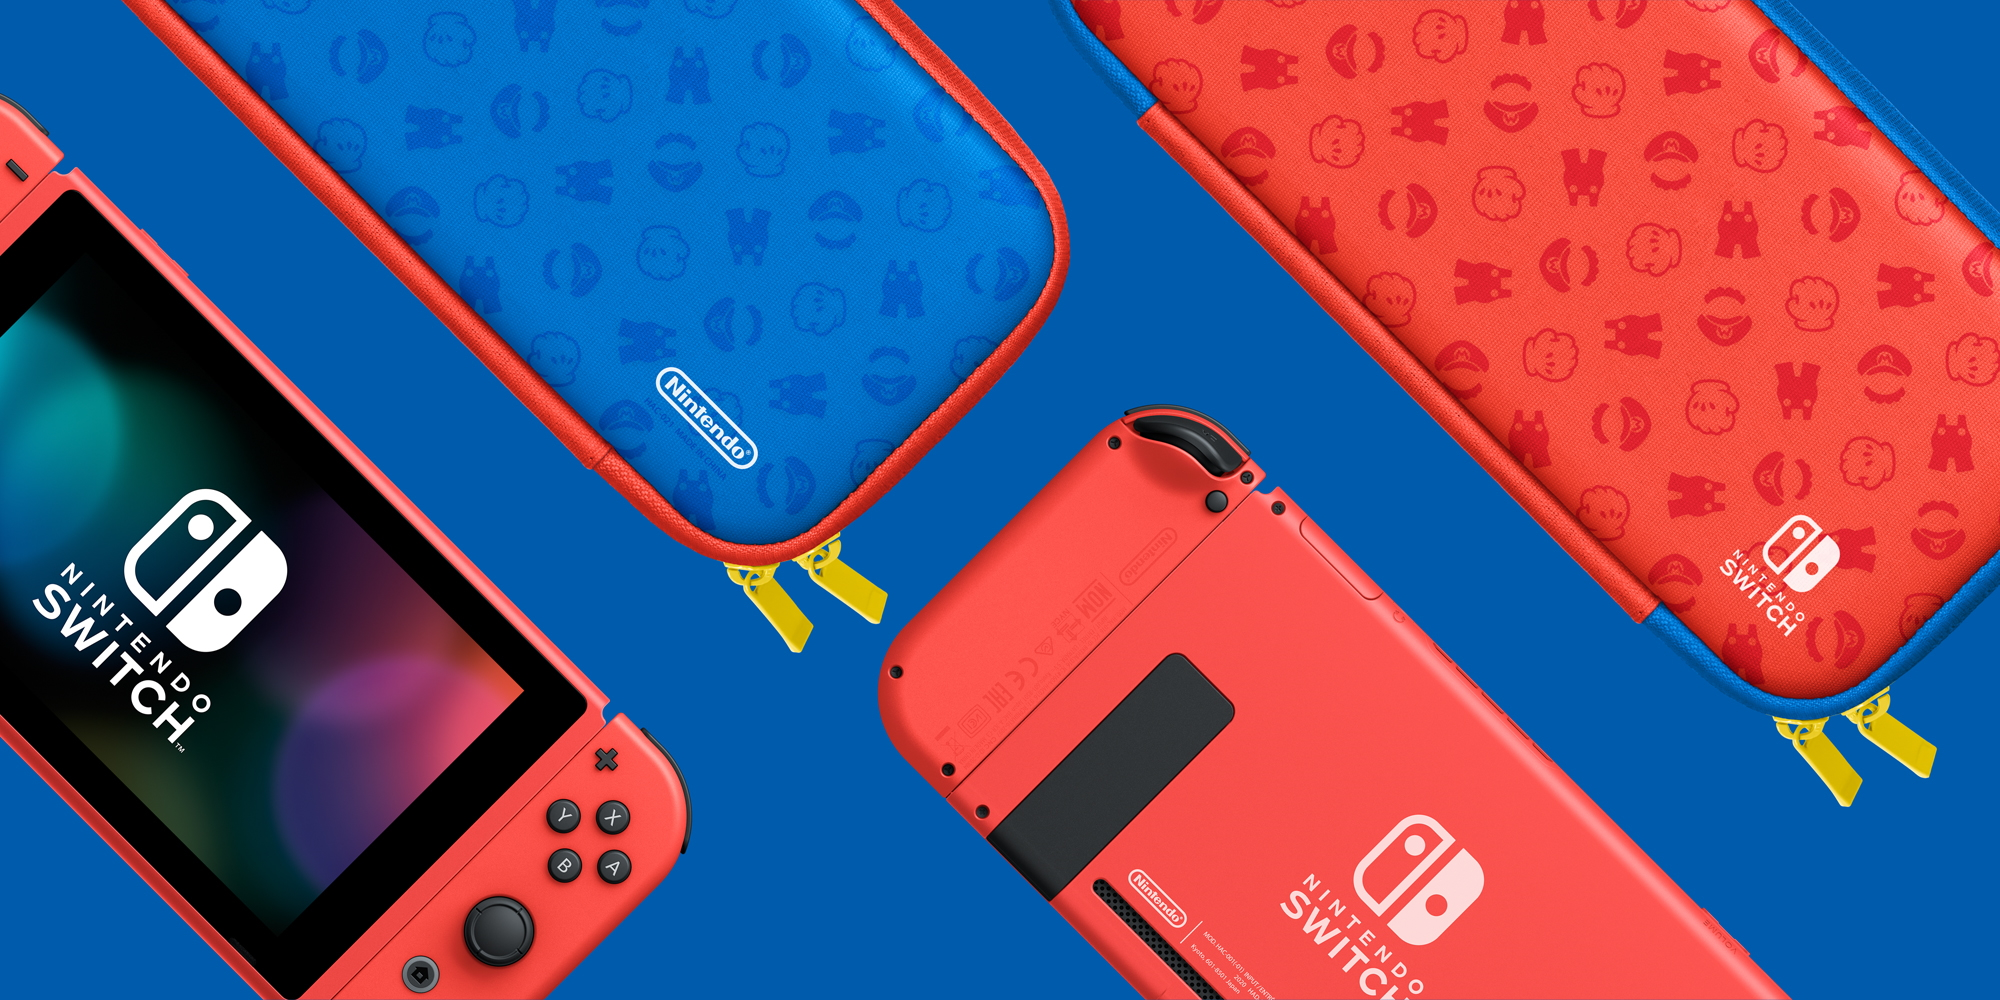 A new Mario Red & Blue Nintendo Switch is coming in February